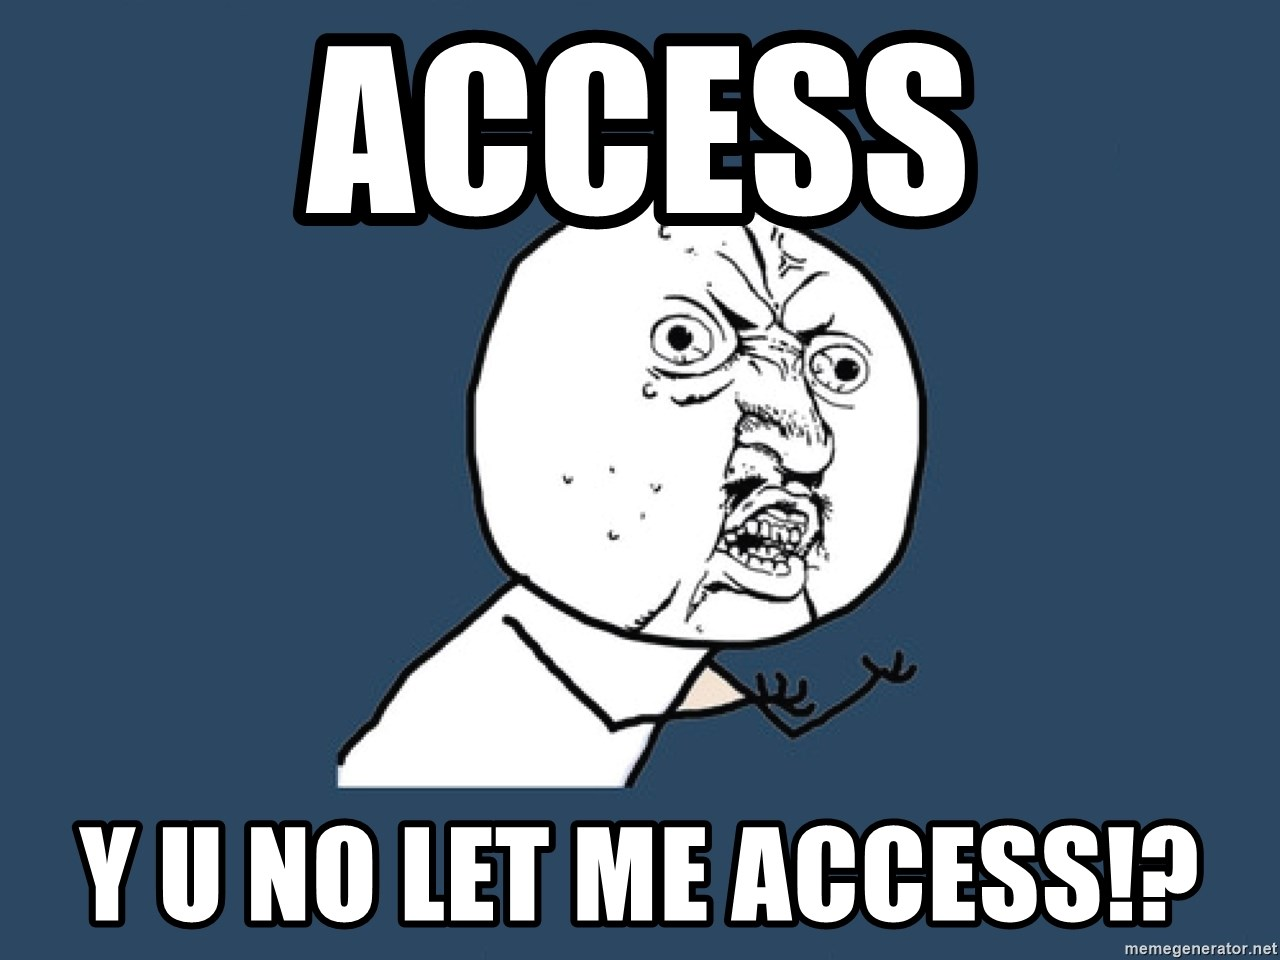 Y U No - ACCESS y u no let me access!?